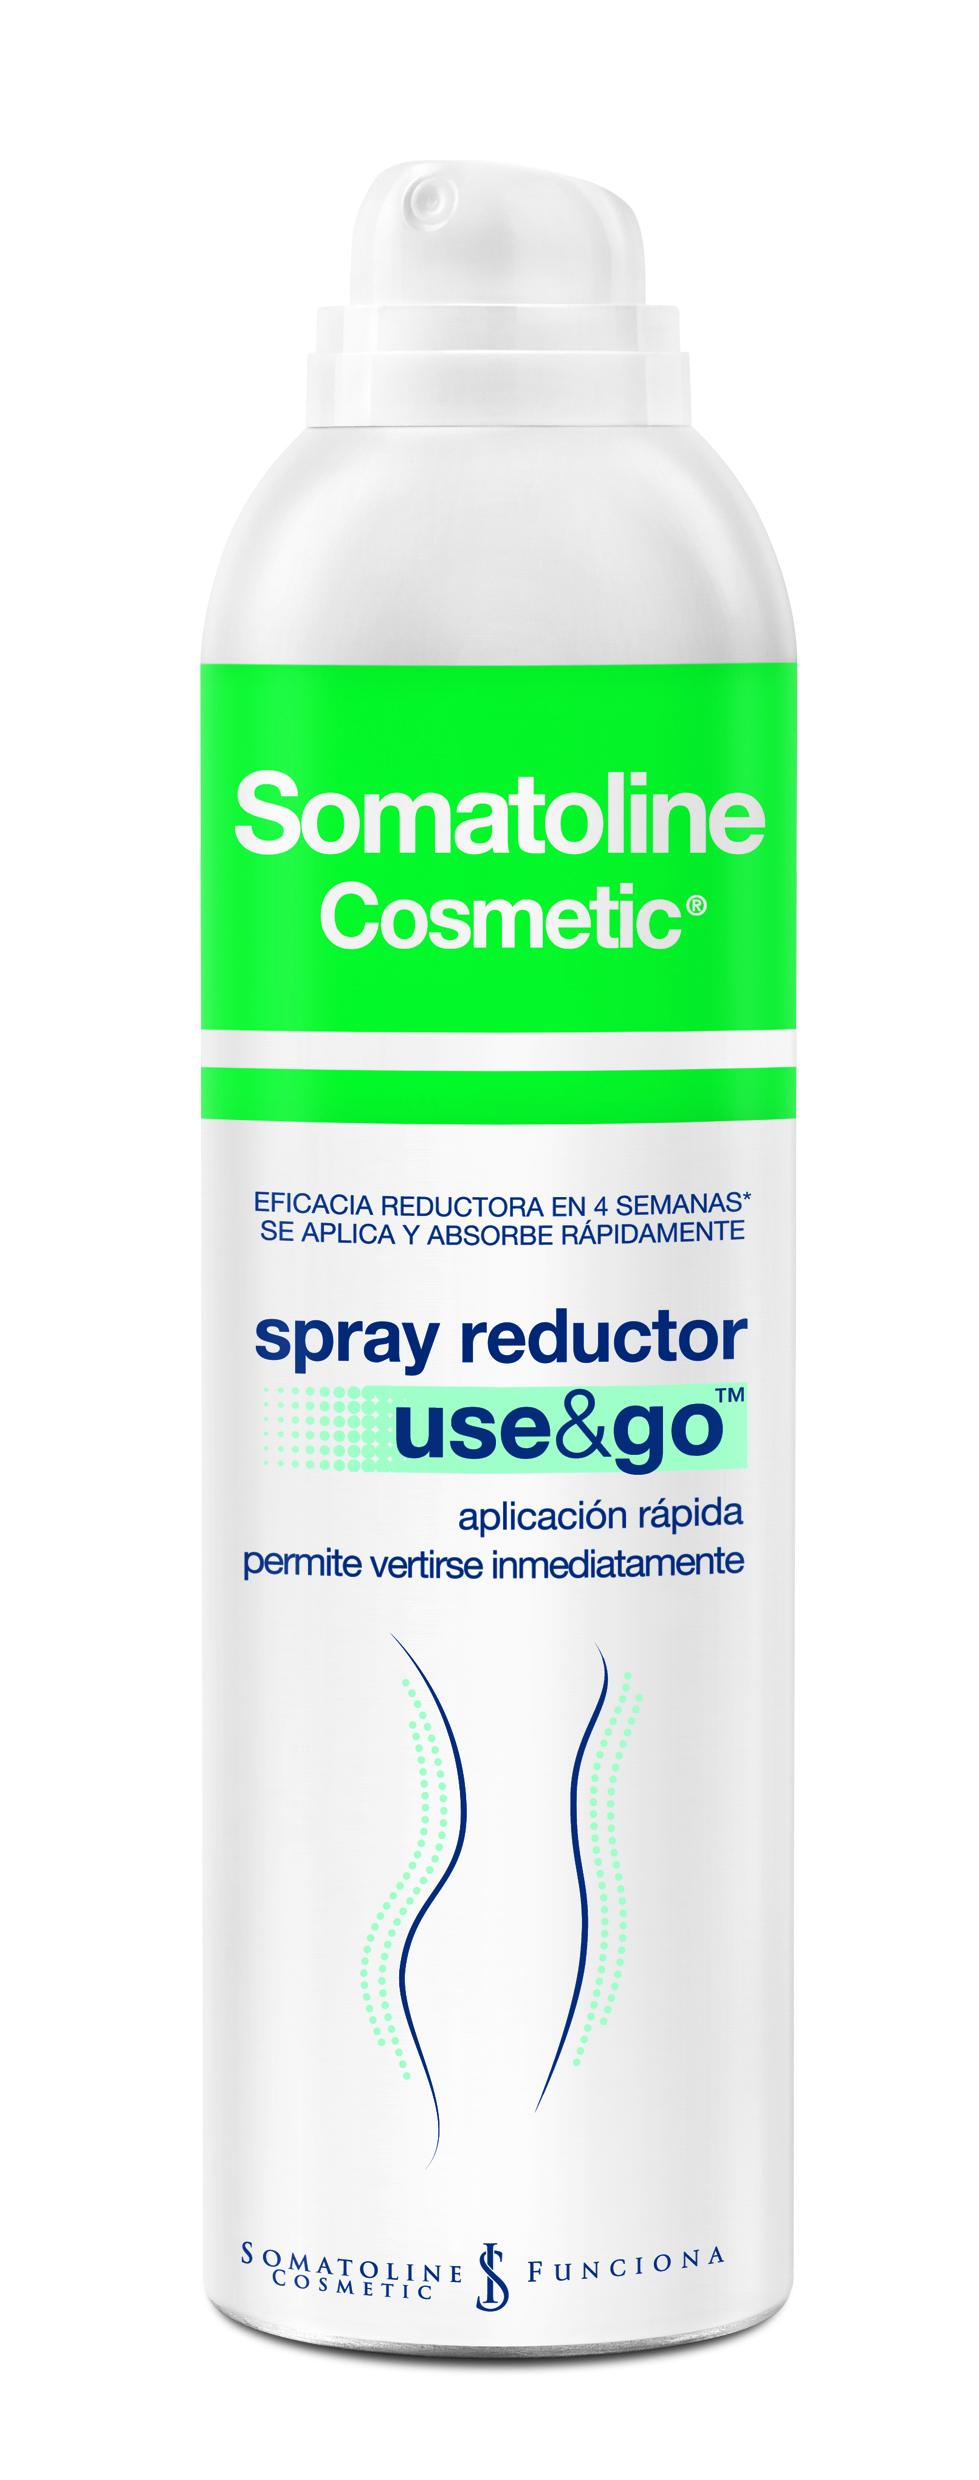 SOMATOLINE COSMETIC SPRAY REDUCTO USE & GO FONDO BLANCO